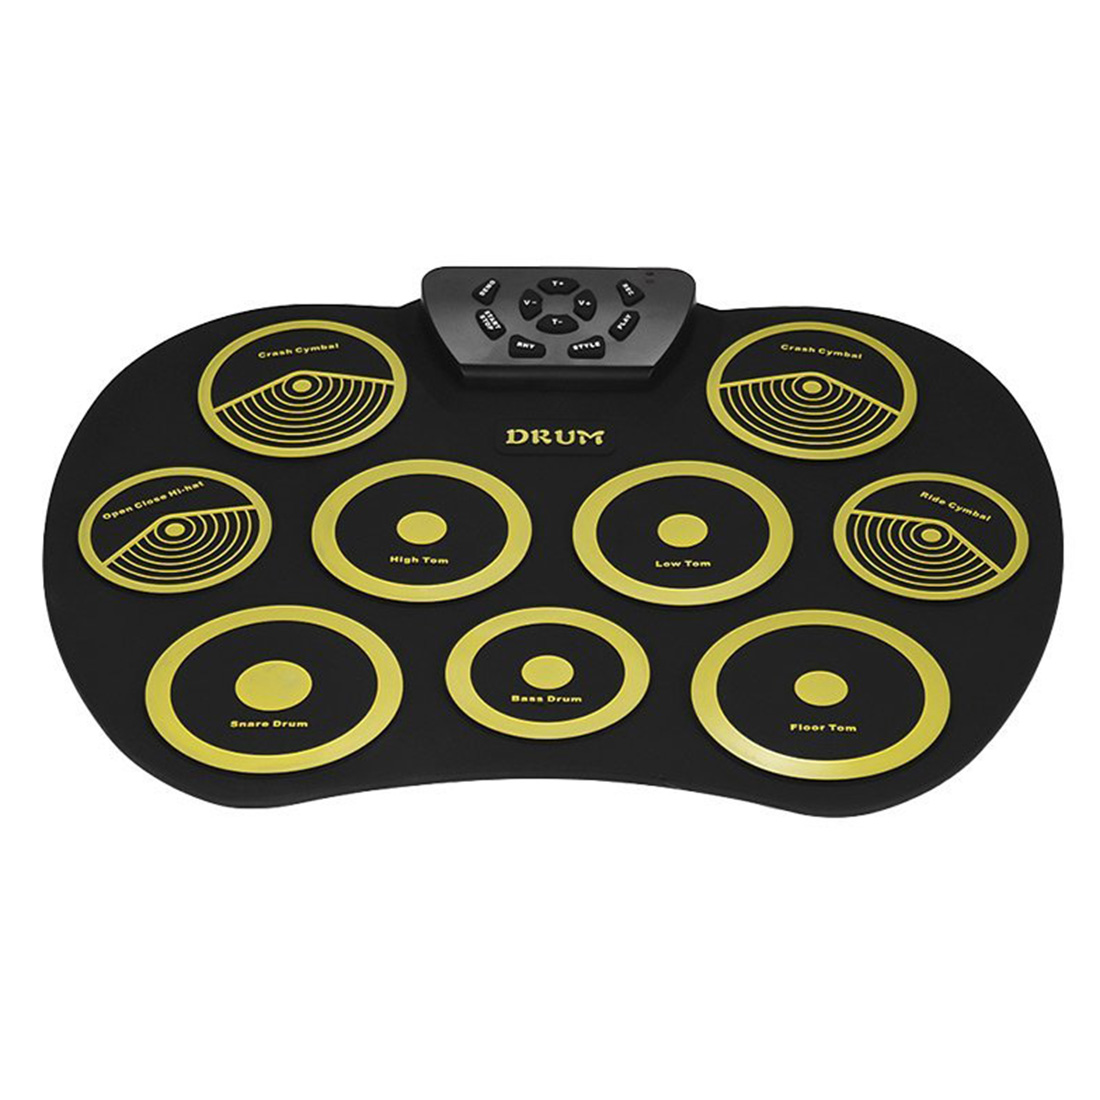 XFDZ Portable Electronics Drum Set Roll Up Drum Kit 9 Silicone Pads USB Powered with Foot Pedals Drumsticks USB CableXFDZ Portable Electronics Drum Set Roll Up Drum Kit 9 Silicone Pads USB Powered with Foot Pedals Drumsticks USB Cable